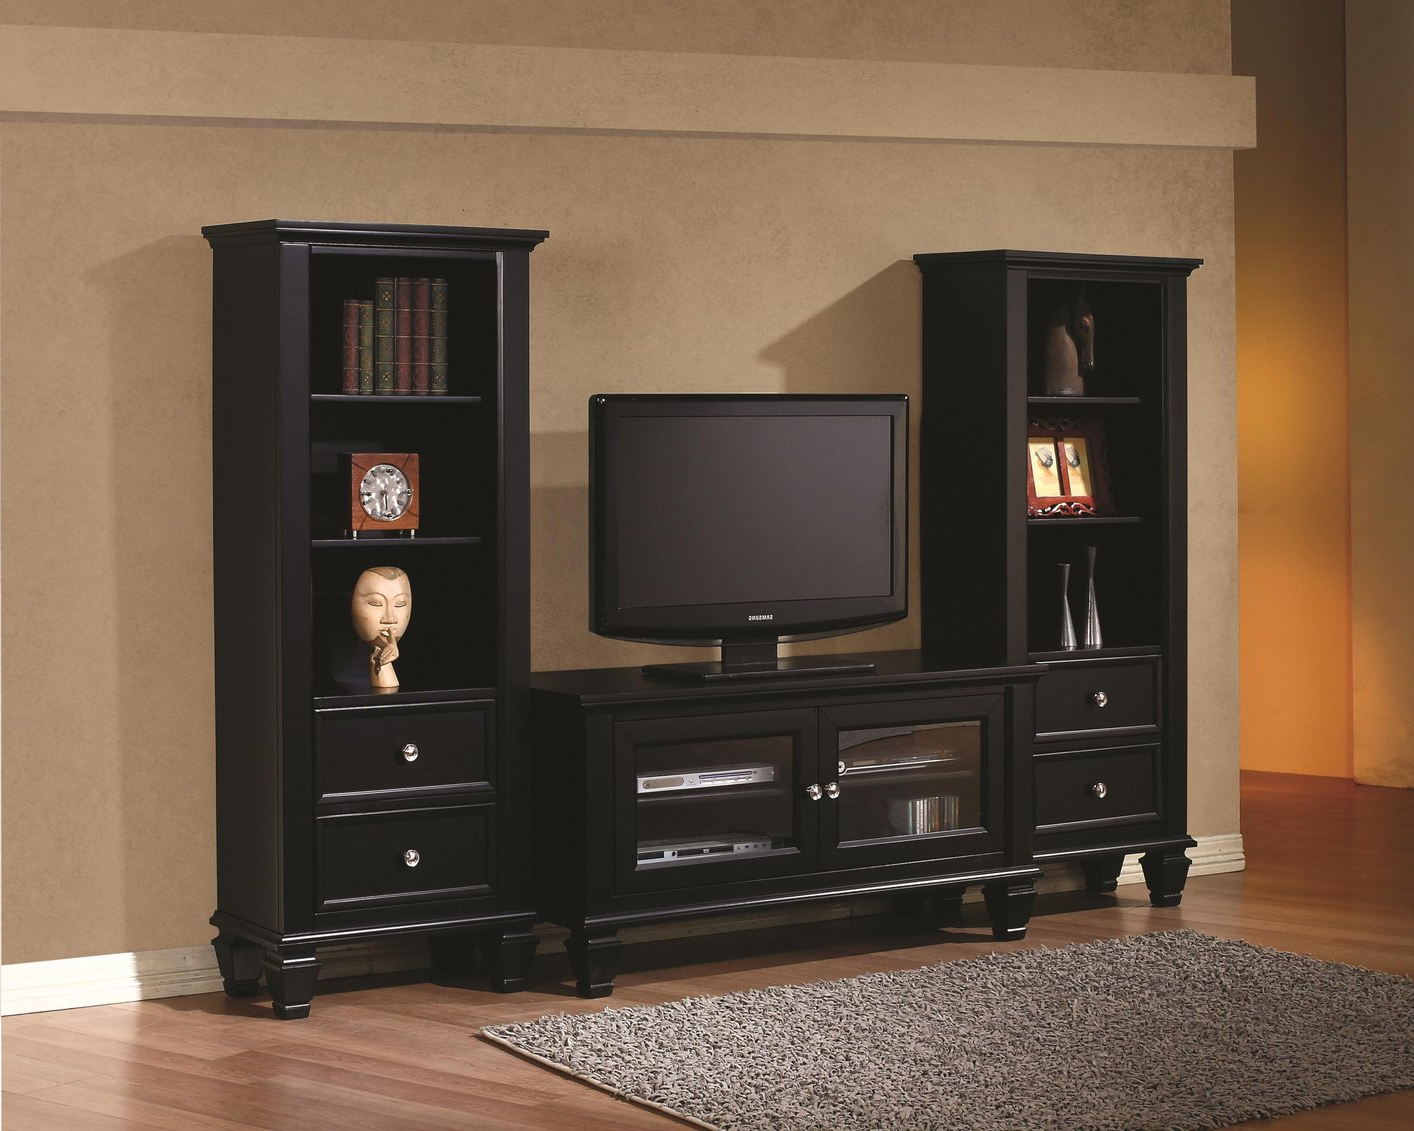 Recent Dark Wood Tv Stands Within Black Wood Tv Stand – Steal A Sofa Furniture Outlet Los Angeles Ca (View 20 of 20)